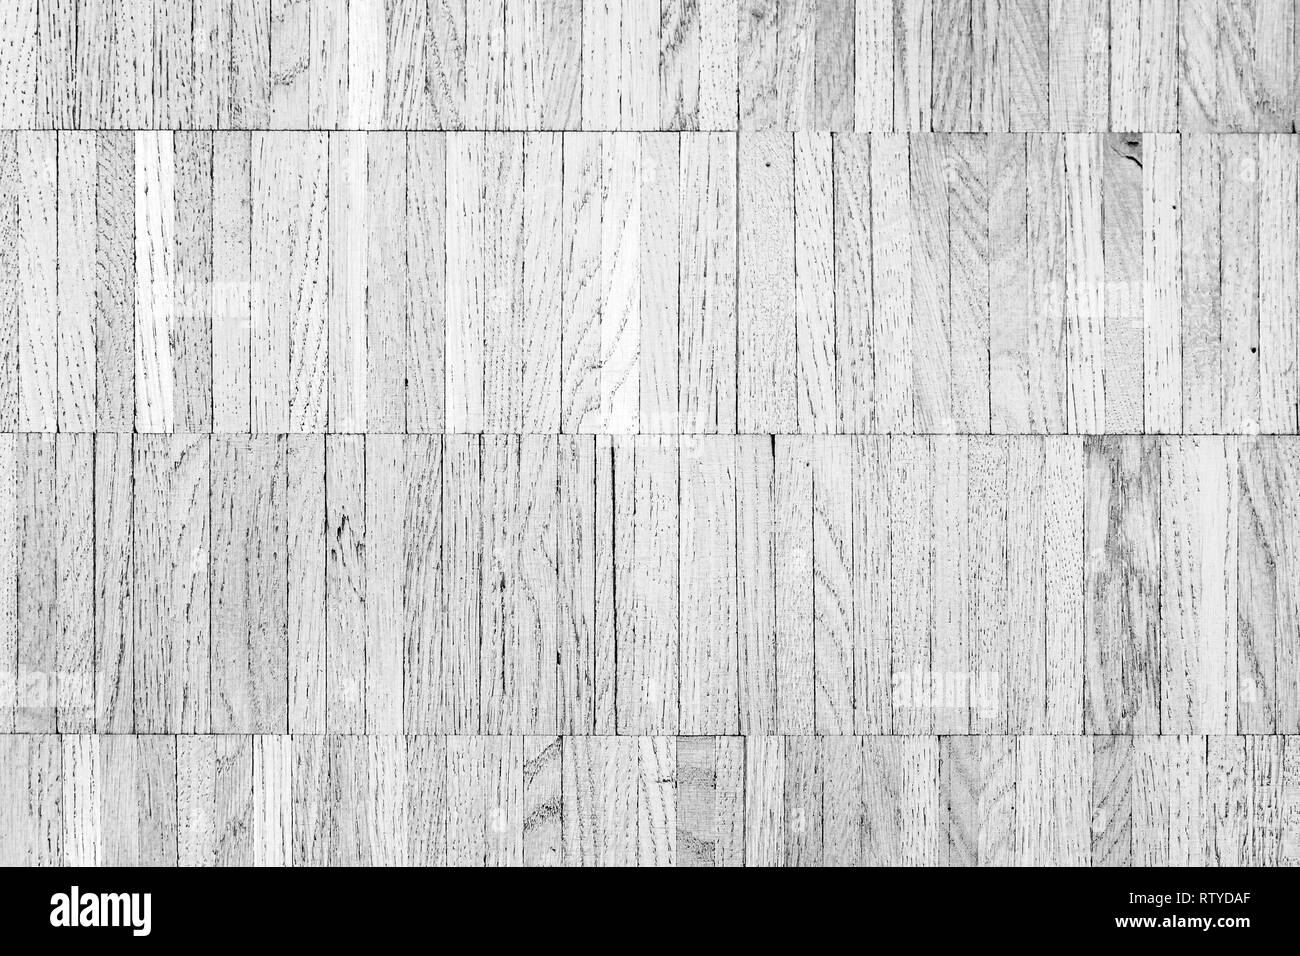 White floor made of wooden planks. Flat background photo texture - Stock Image